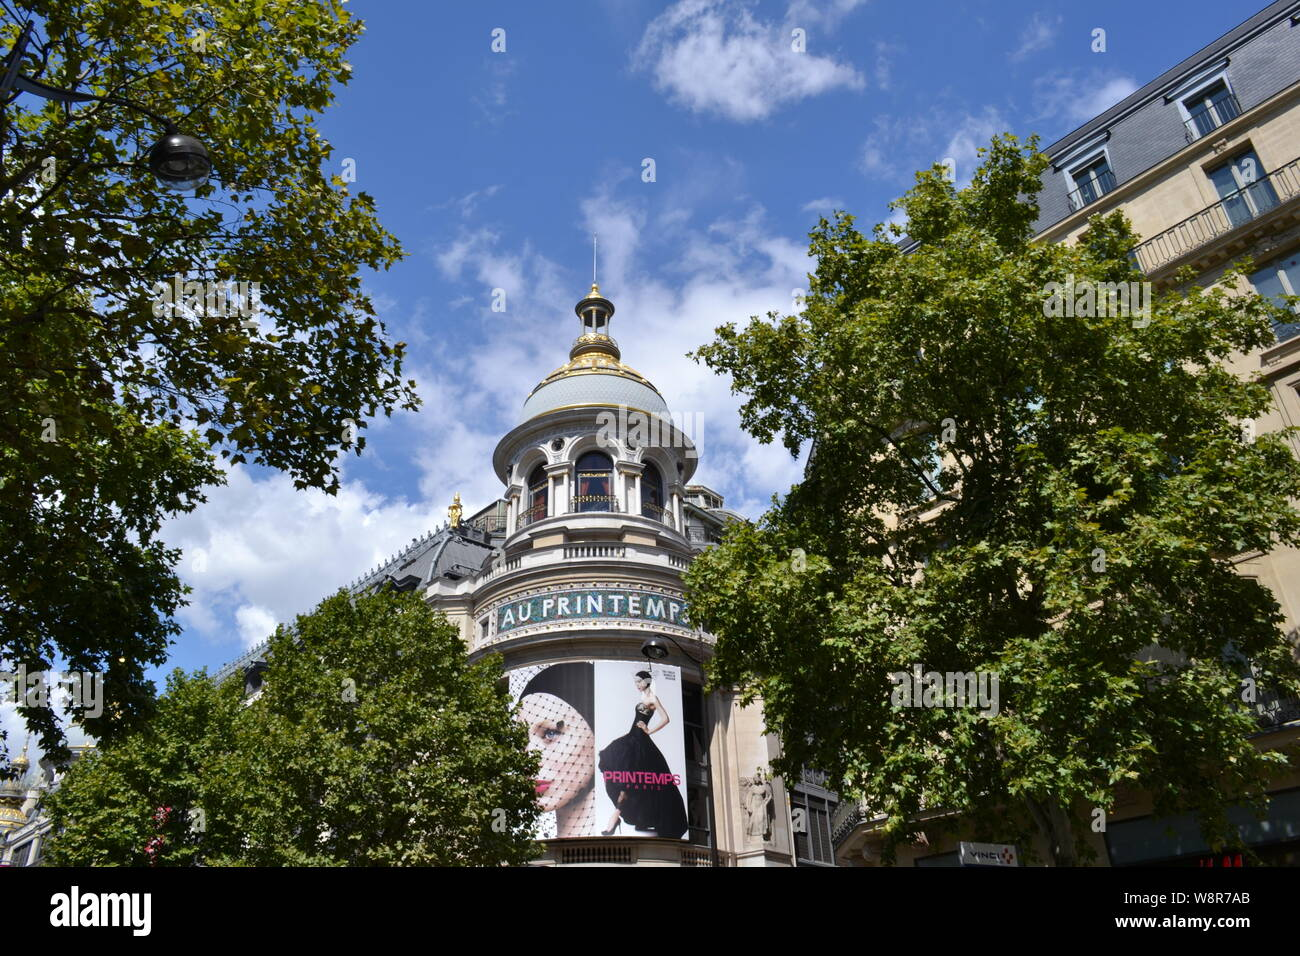 Paris/France - August 19, 2014: Beautiful women photos on the facade of the famous Au Printemps department store for beauty biggest in the world. Stock Photo